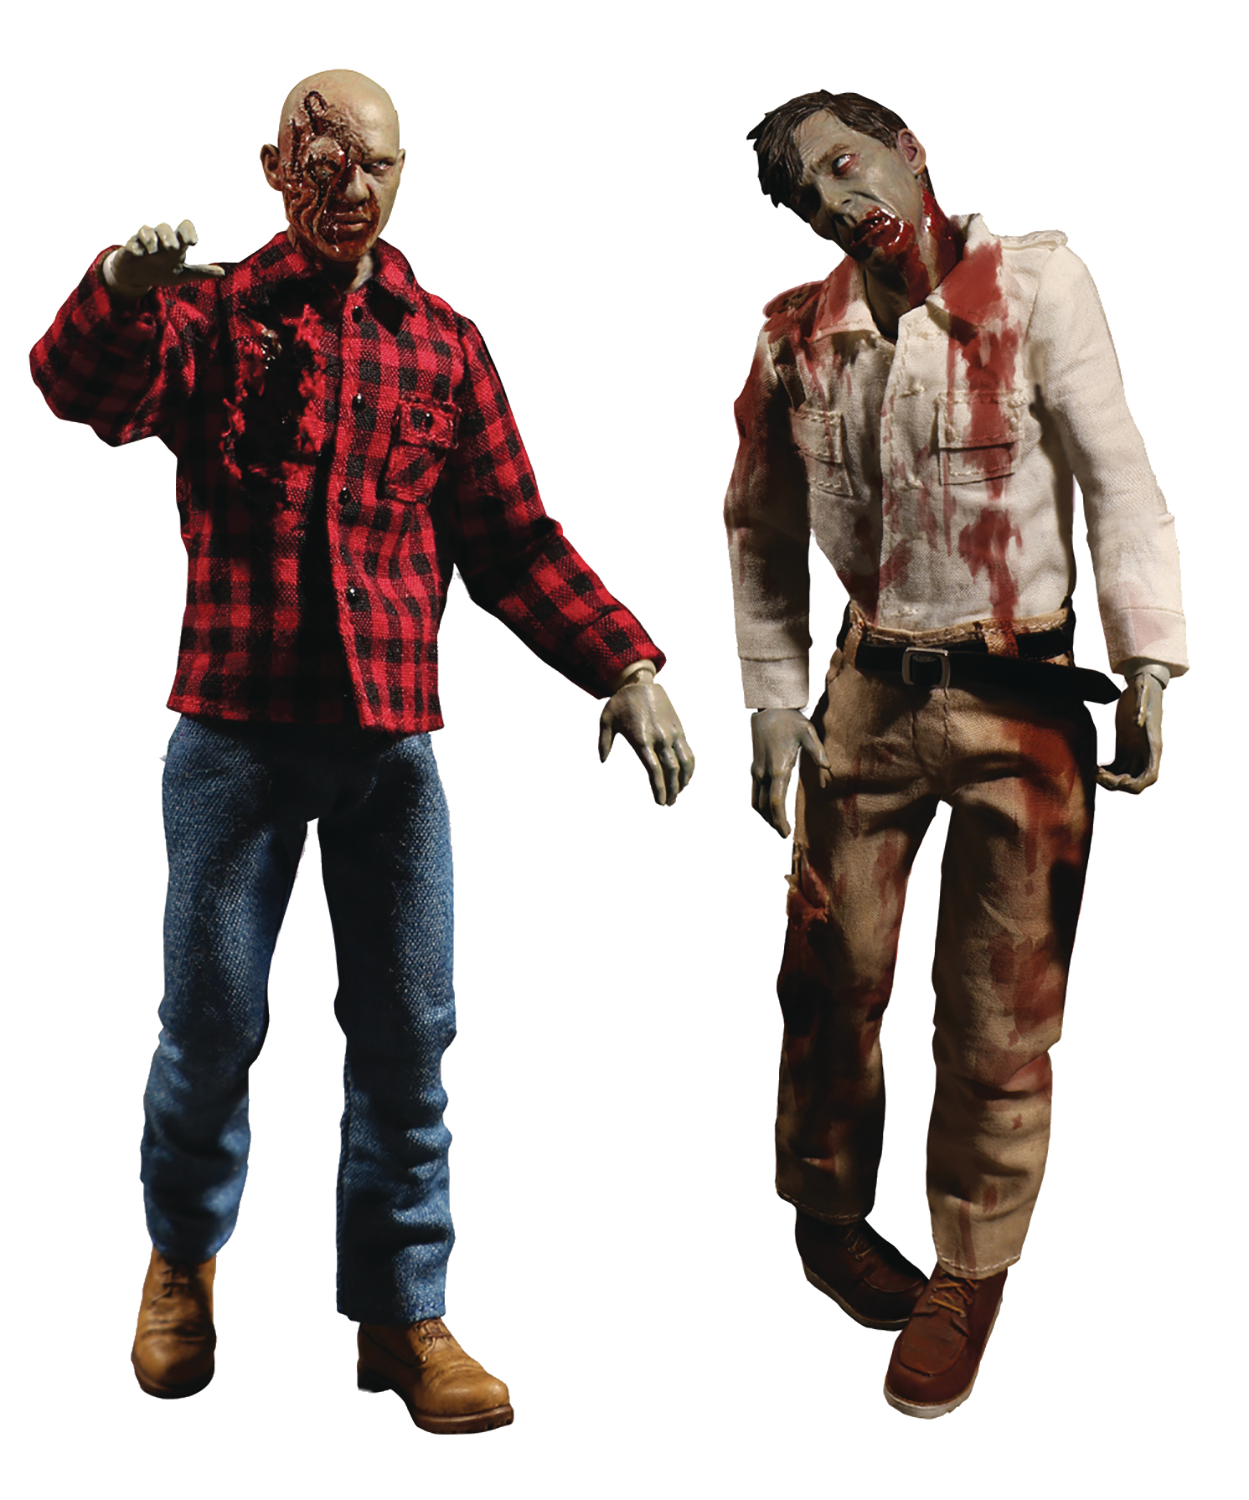 ONE-12 COLLECTIVE DAWN OF DEAD FLY BOY & PLAID ZOMBIE AF 2PK